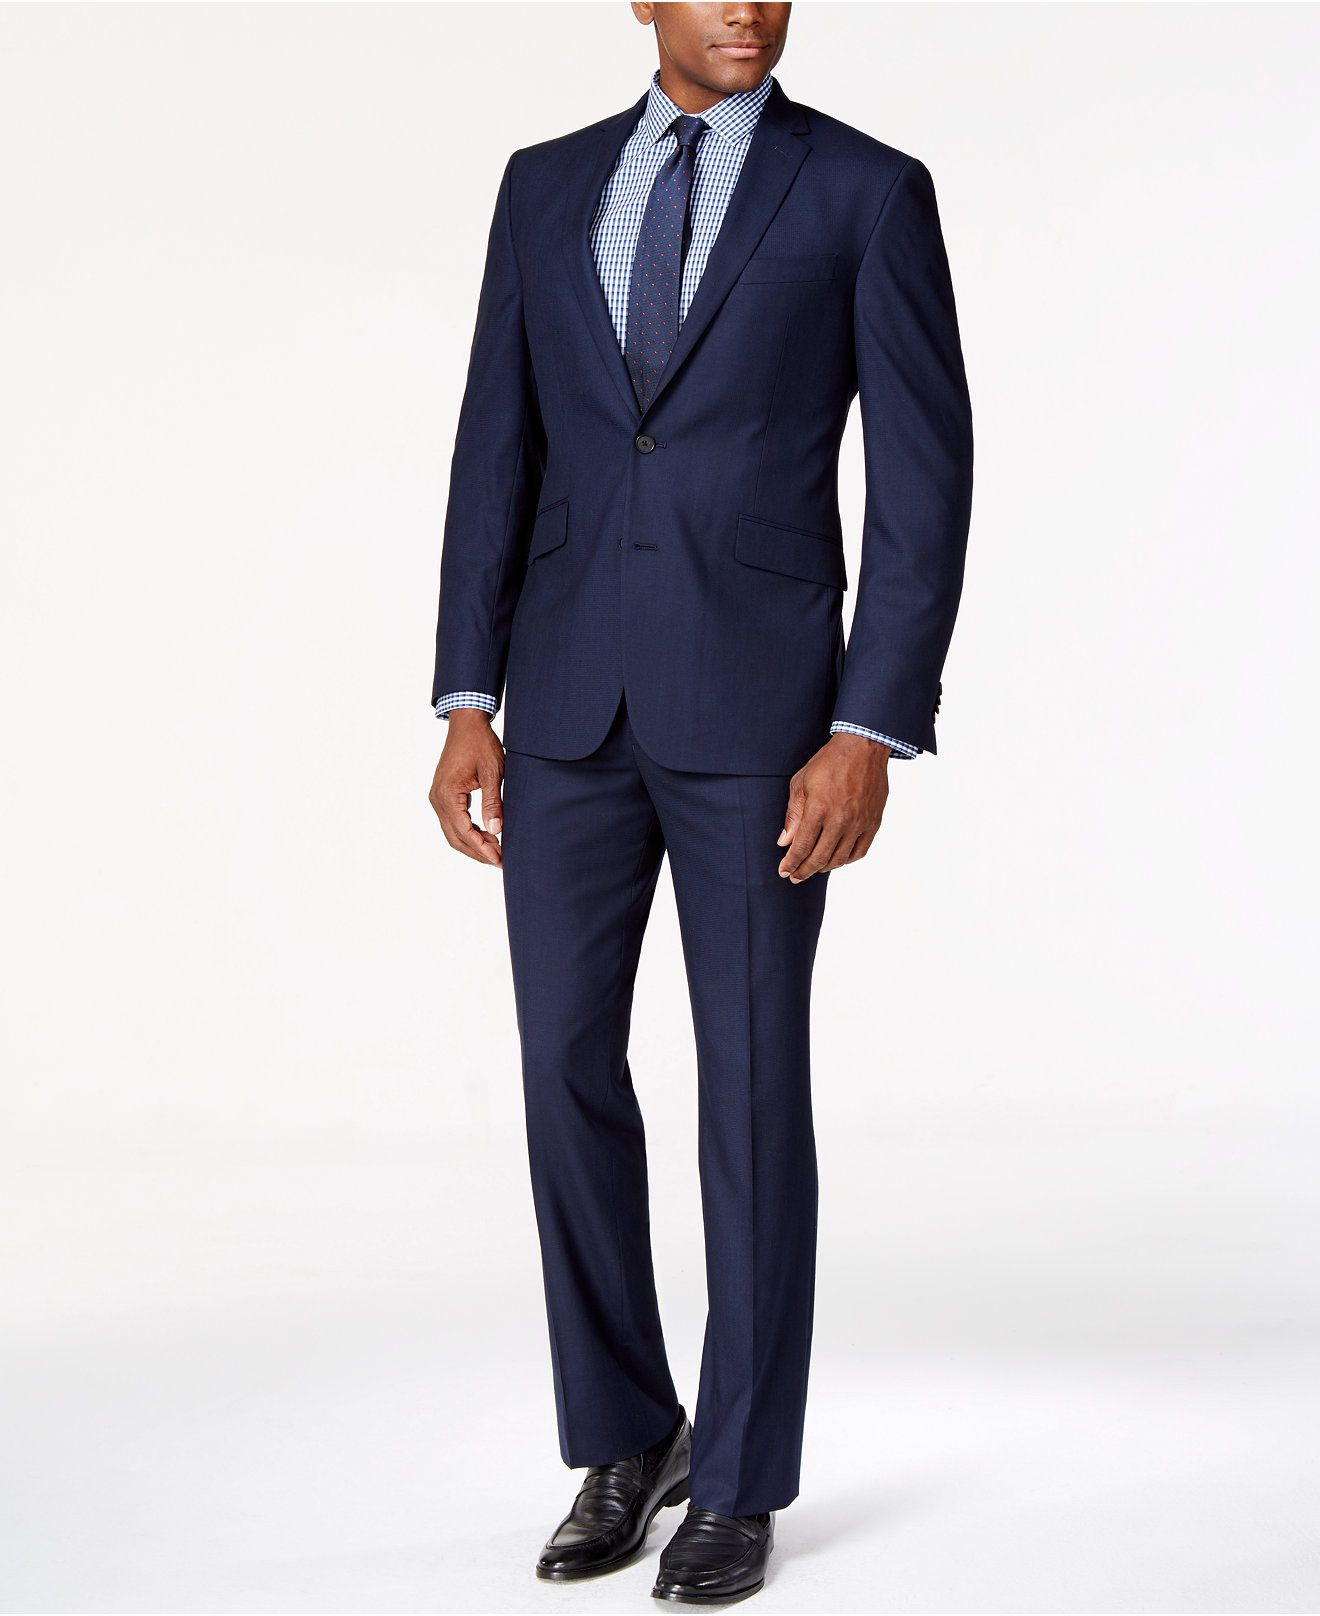 Kenneth Cole Reaction Tonal Blue Shadow Check Slim-Fit Suit - Suits   Suit  Separates - Men - Macy s df03b8114